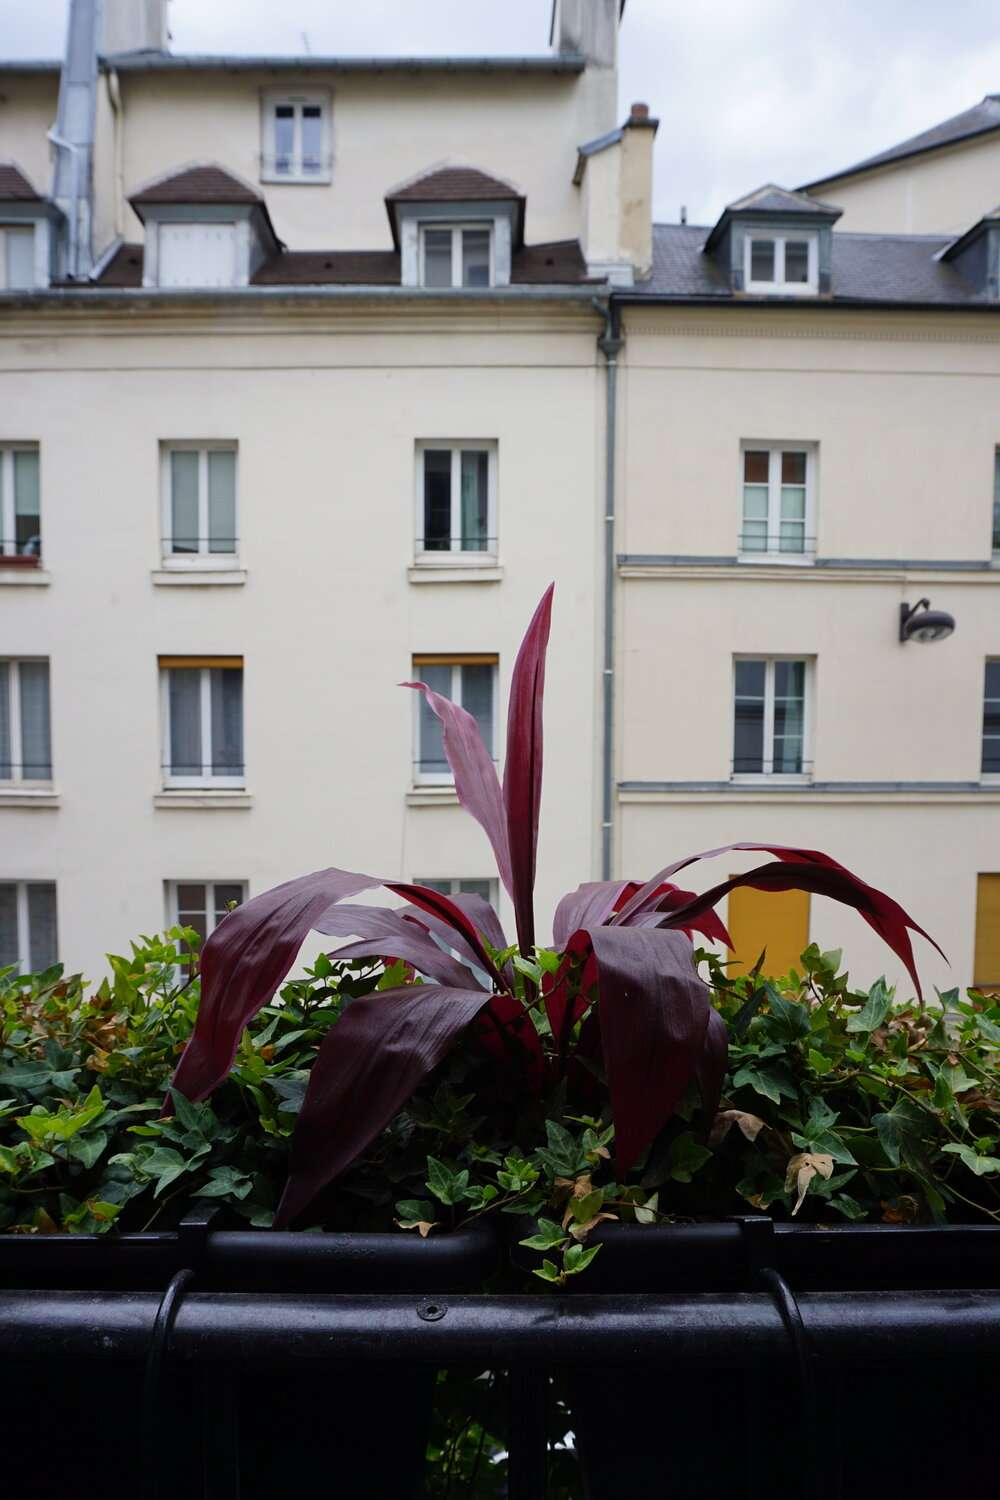 typical Parisian buildings seen from the bedroom at Hotel Monte Cristo Paris